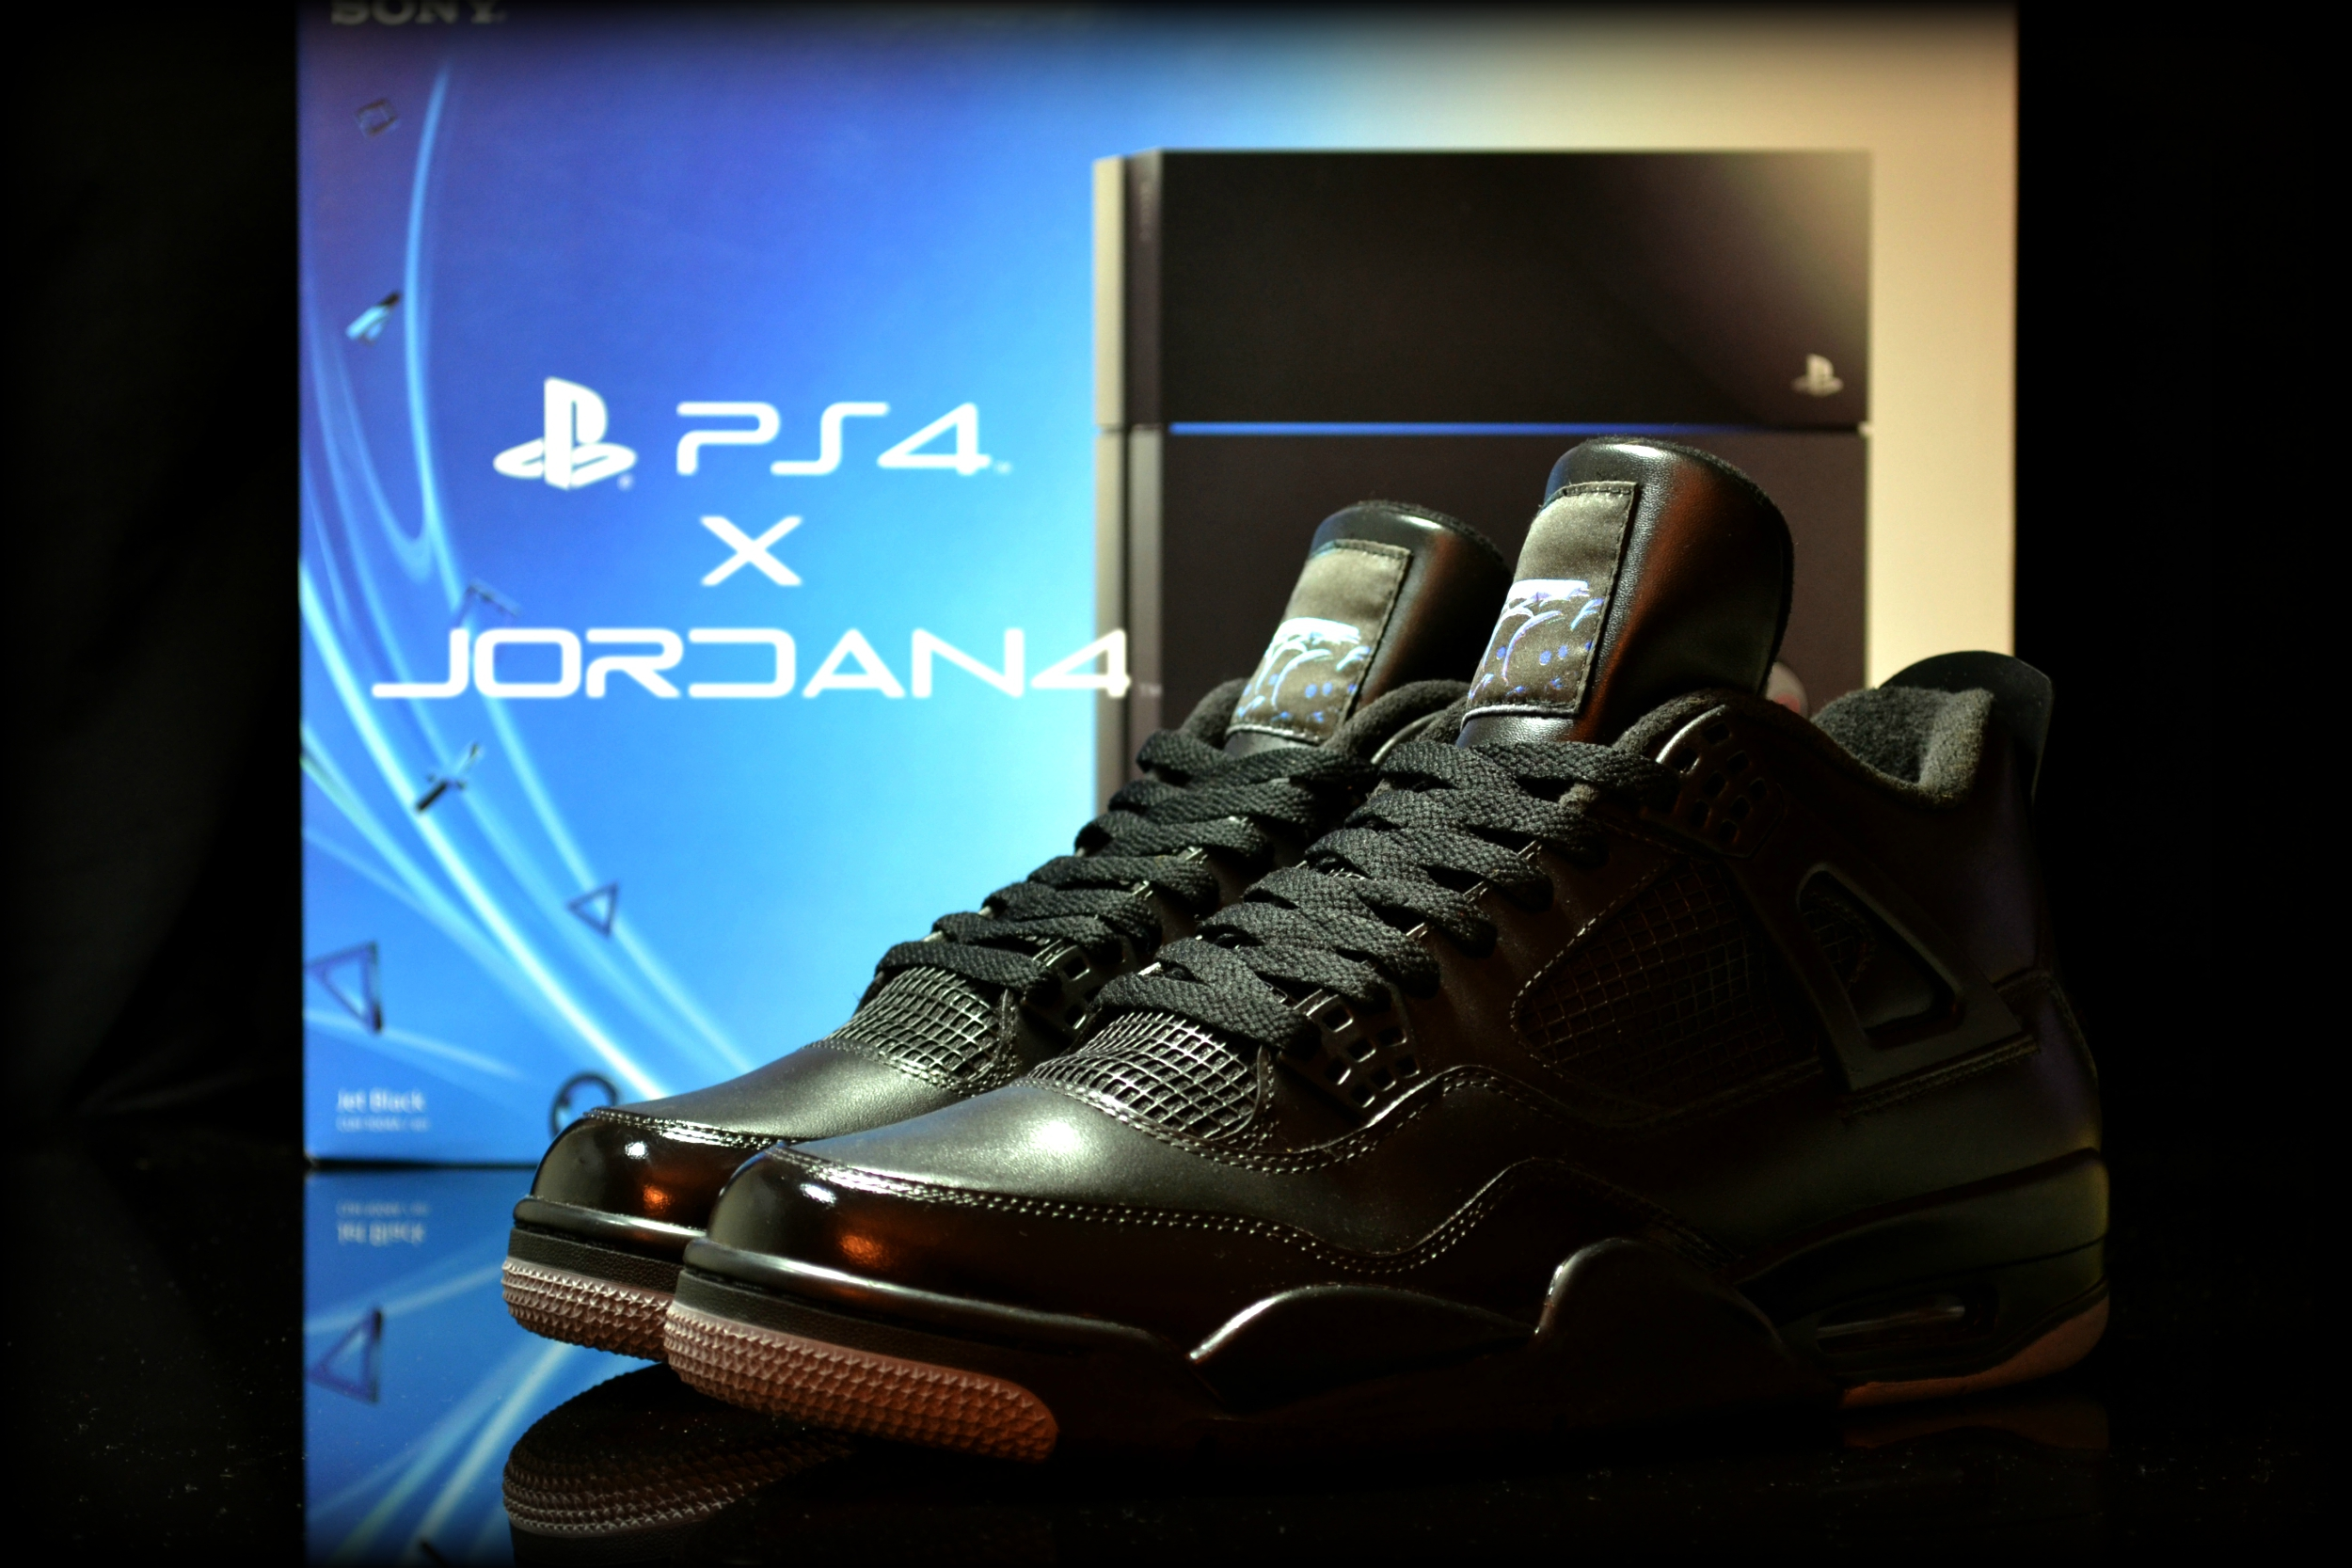 Air Jordan 4 X Playstation 4 Customisation by FreakerSneaks